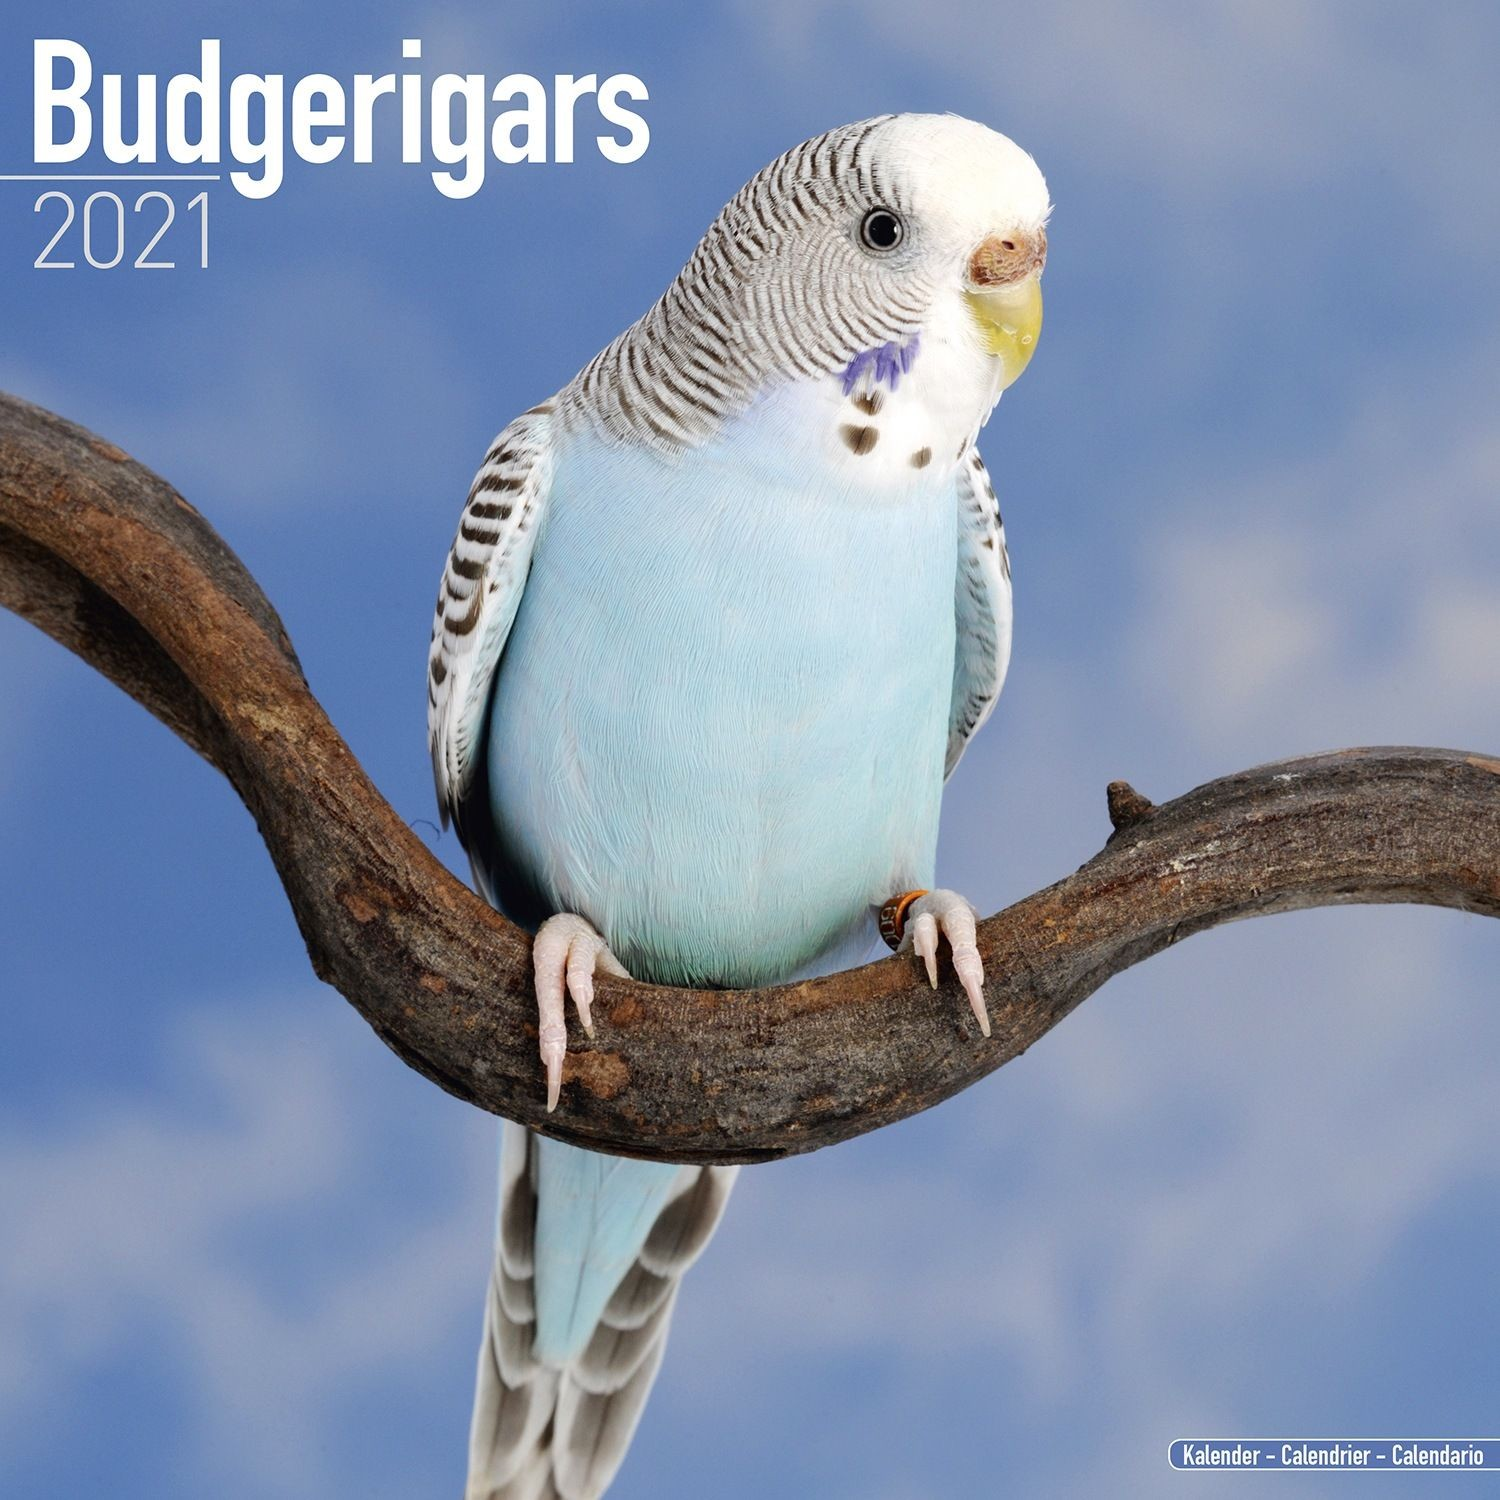 Budgerigar Wall Calendar 2021 by Avonside